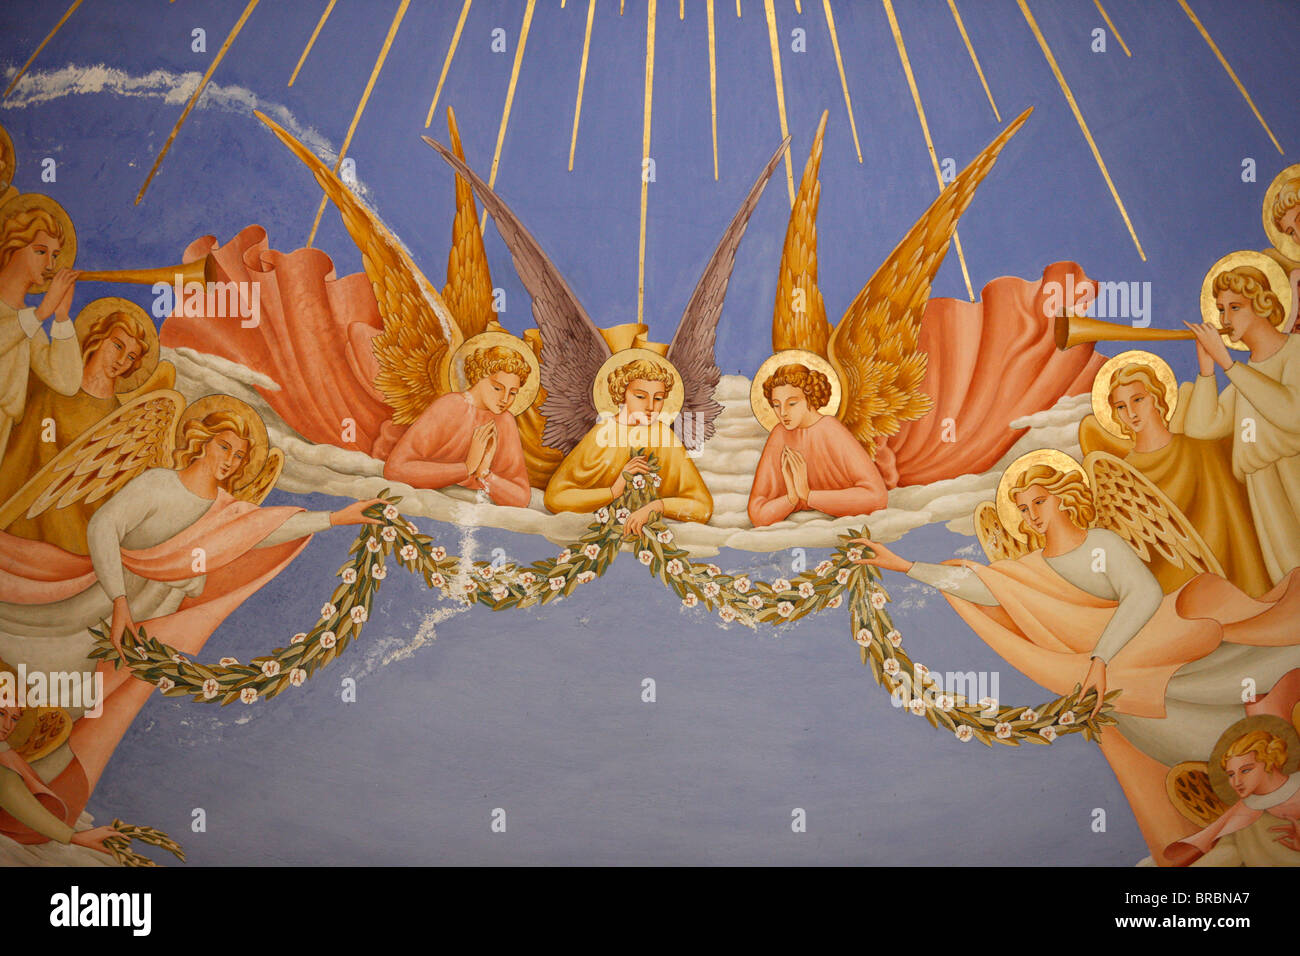 Detail of angels in a fresco in the Visitation church in Ein Kerem, Israel - Stock Image